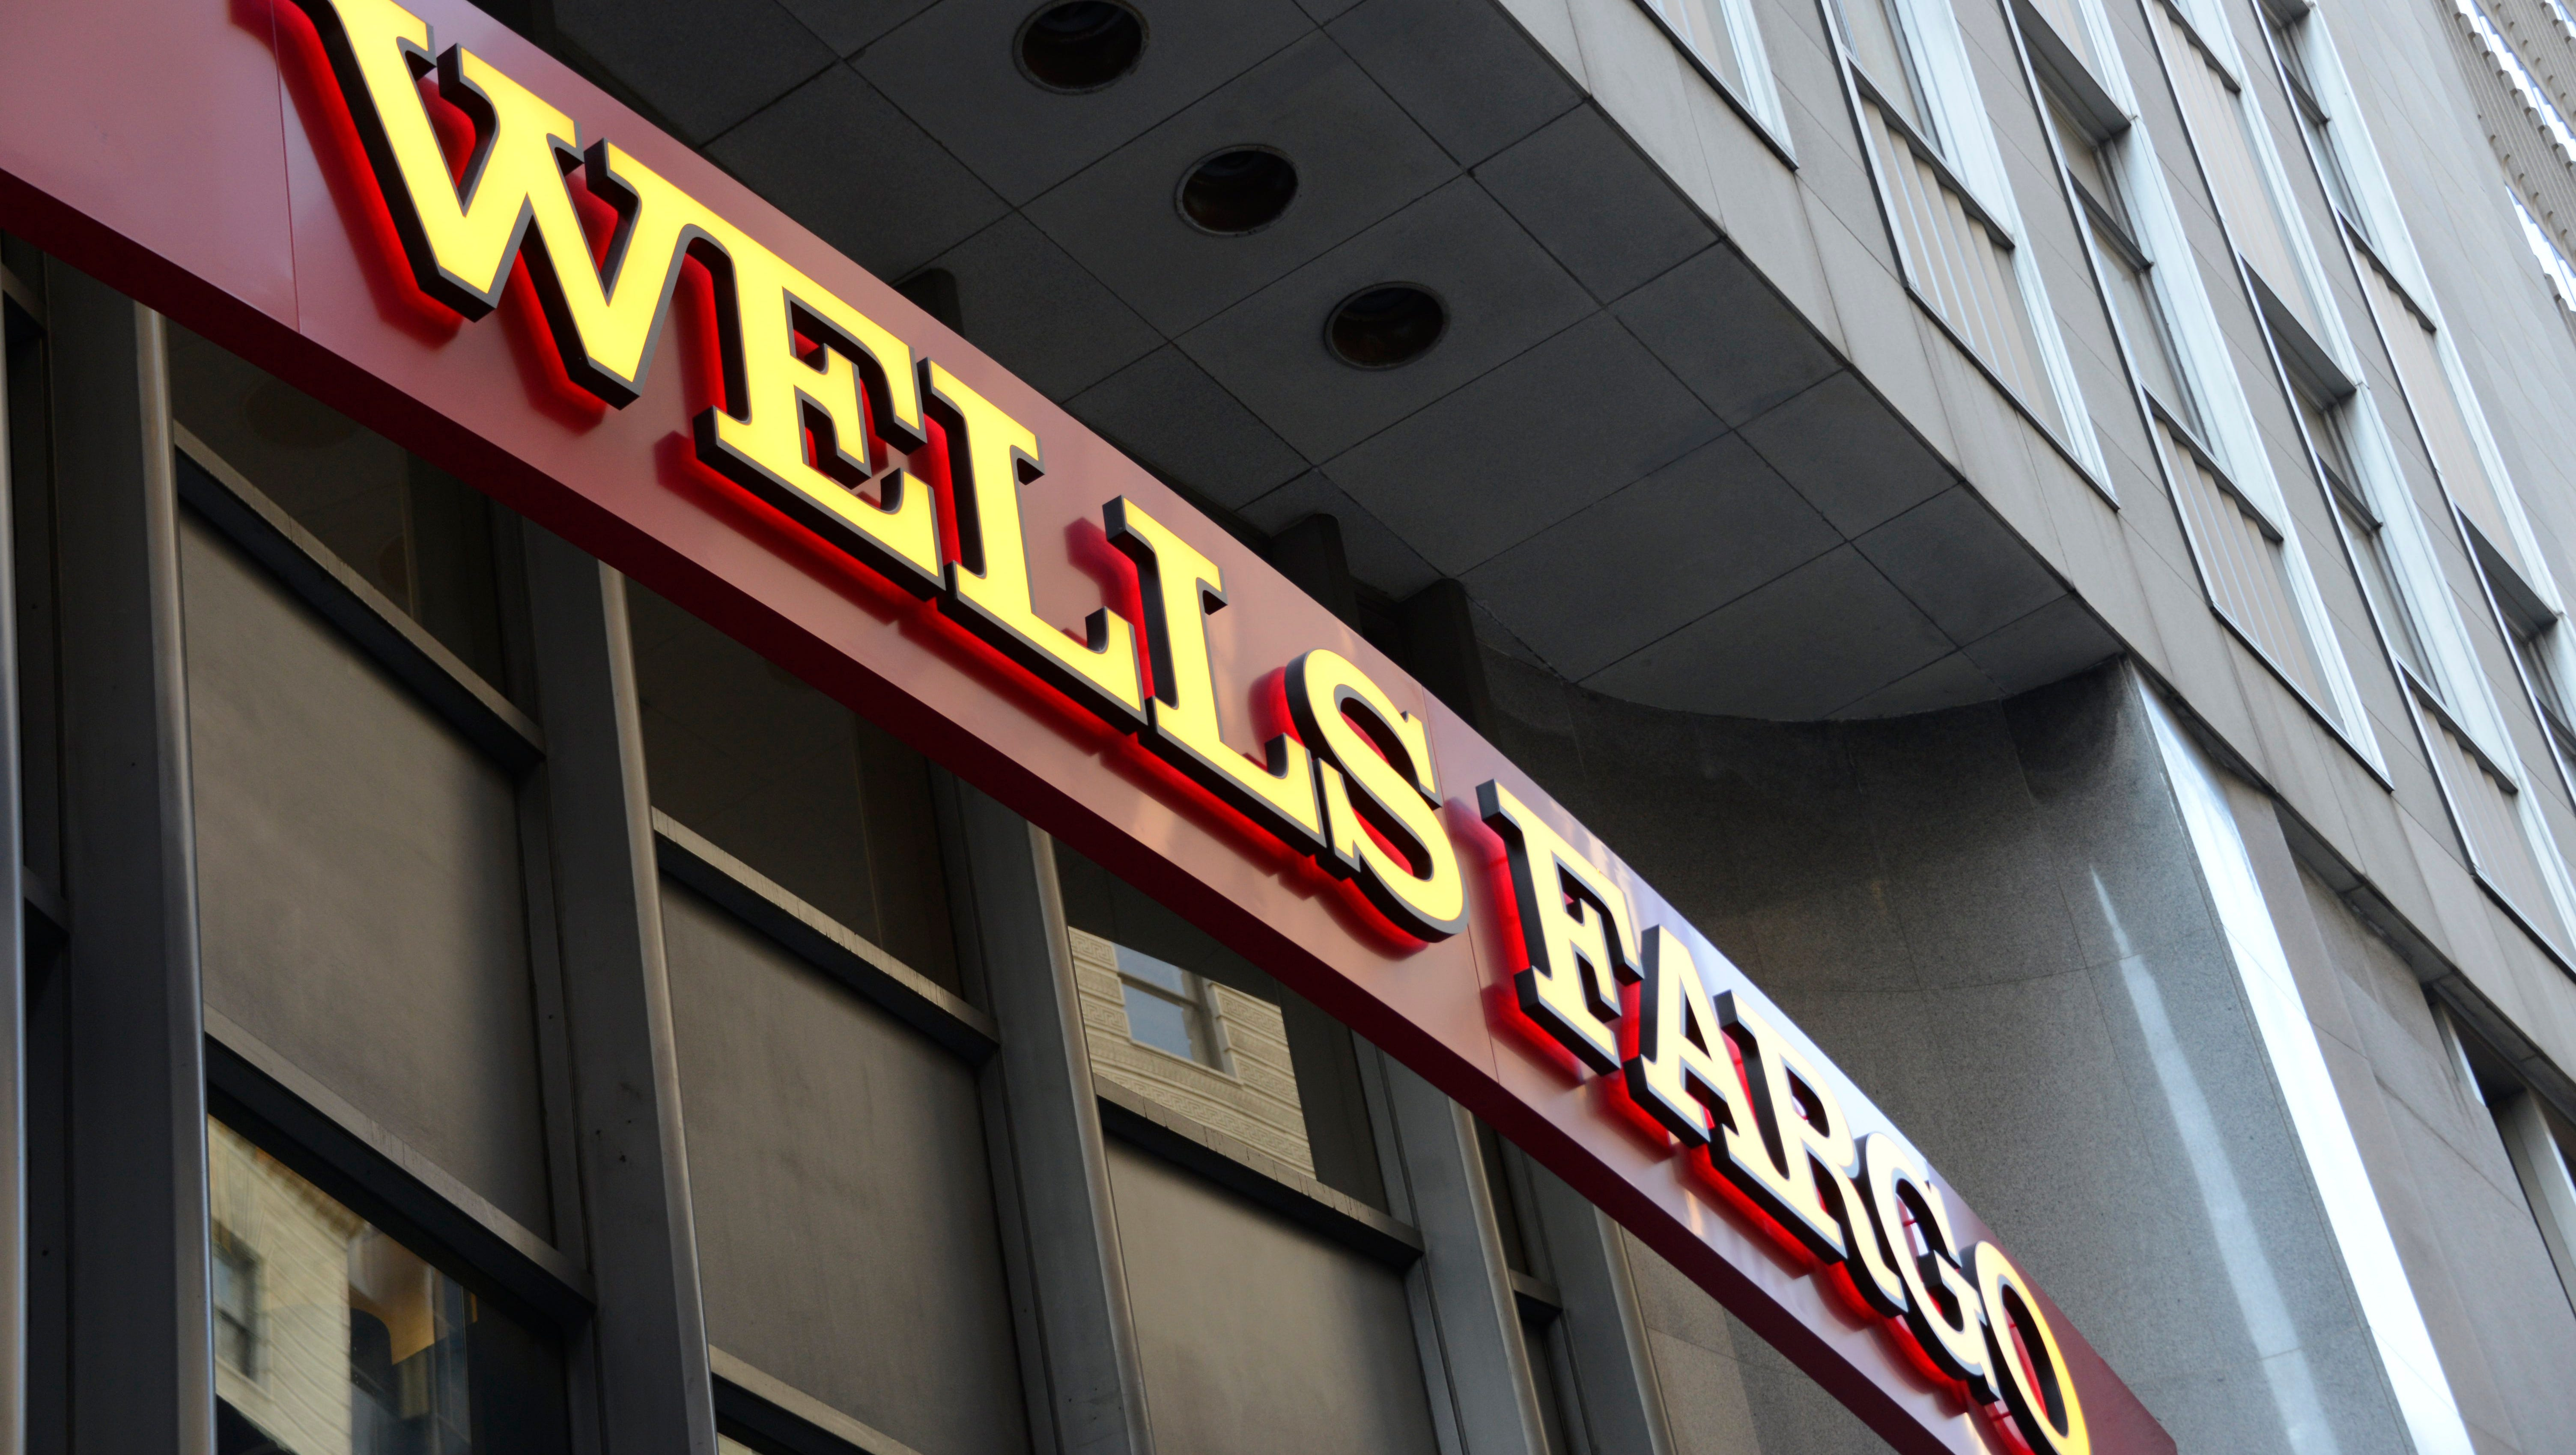 usatoday.com - Kevin McCoy, USA TODAY - Wells Fargo plans 5 percent to 10 percent workforce cut over the next three years